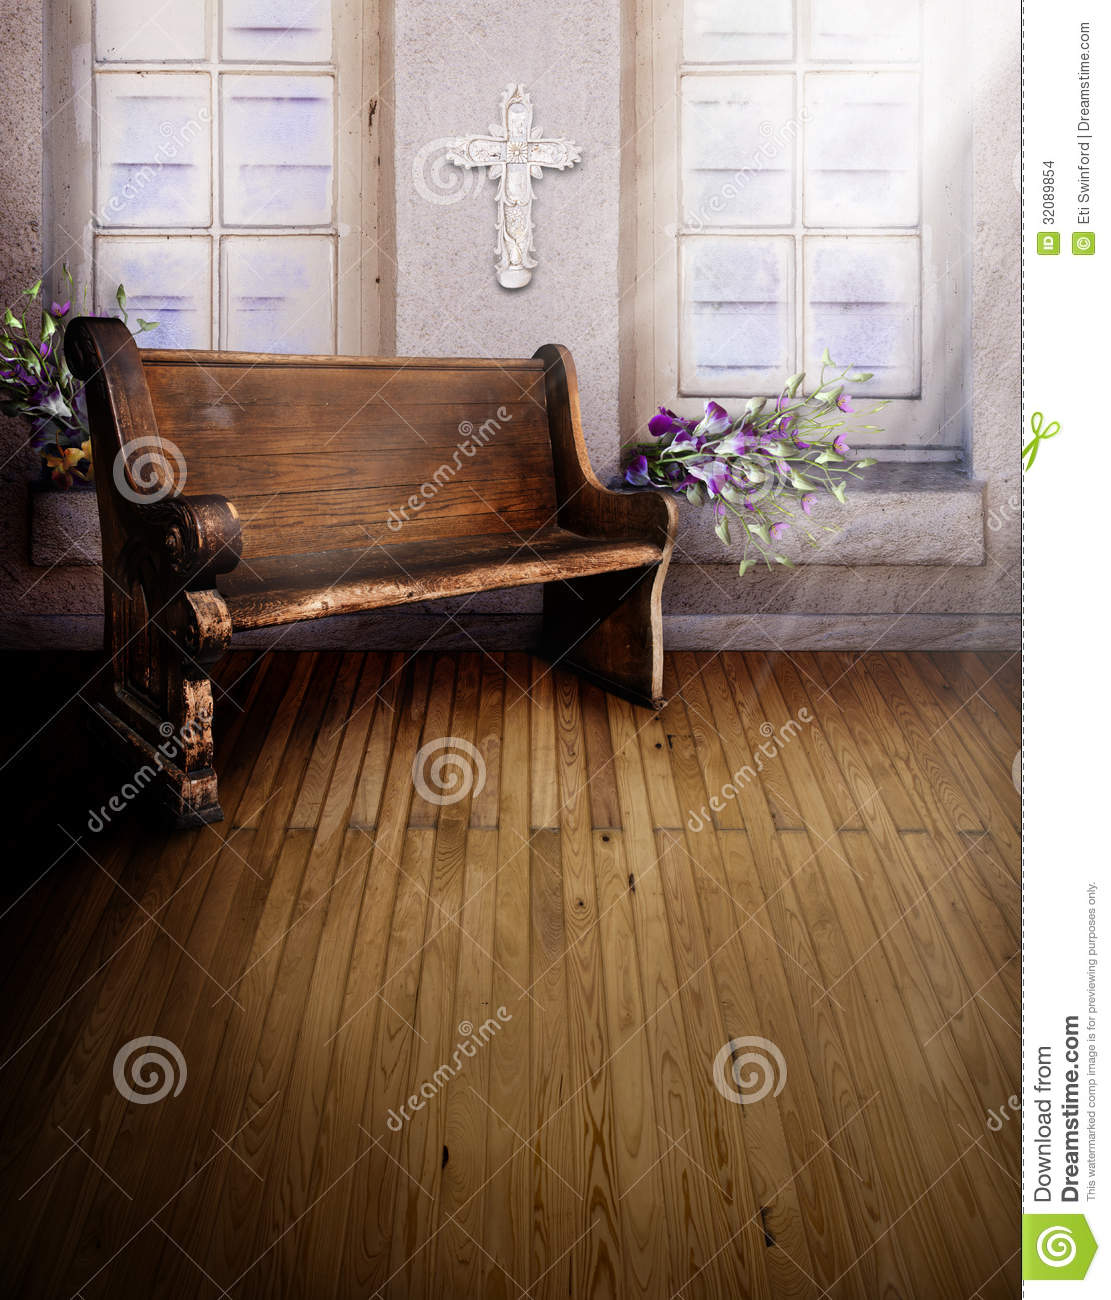 Sanctuary Church Pew Stock Images Image 32089854